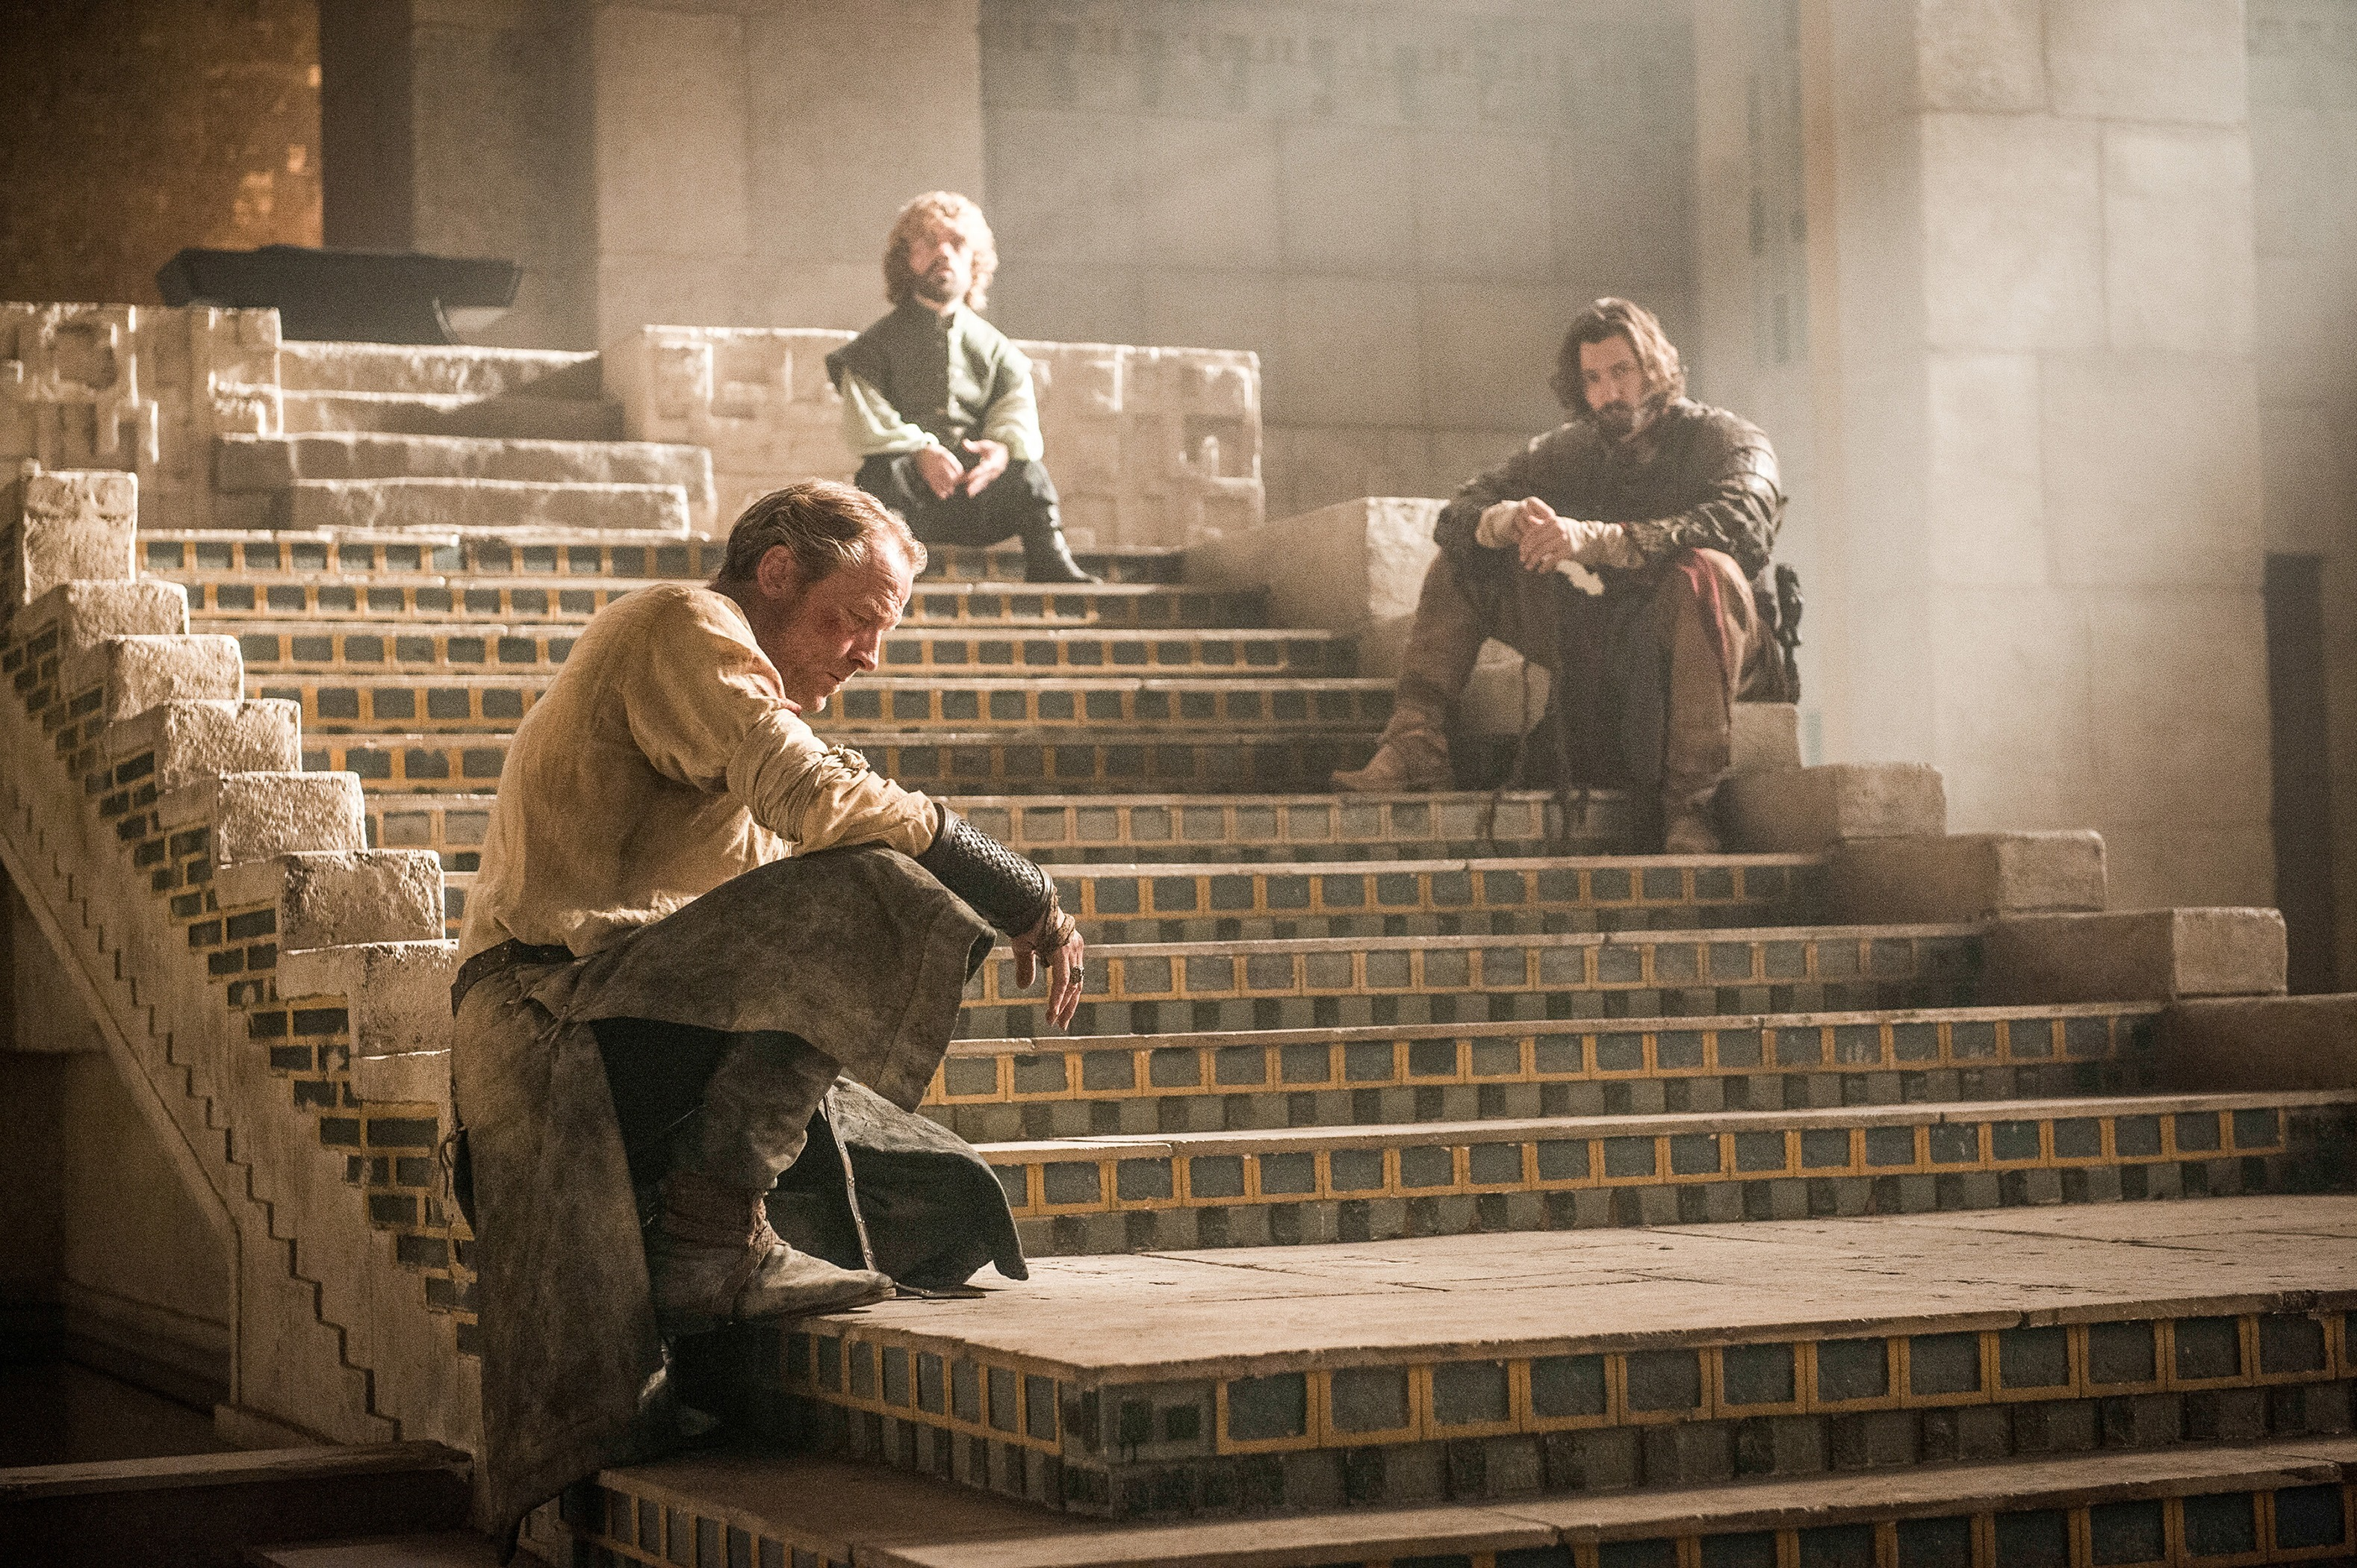 game of thrones 510 finale best images 2015